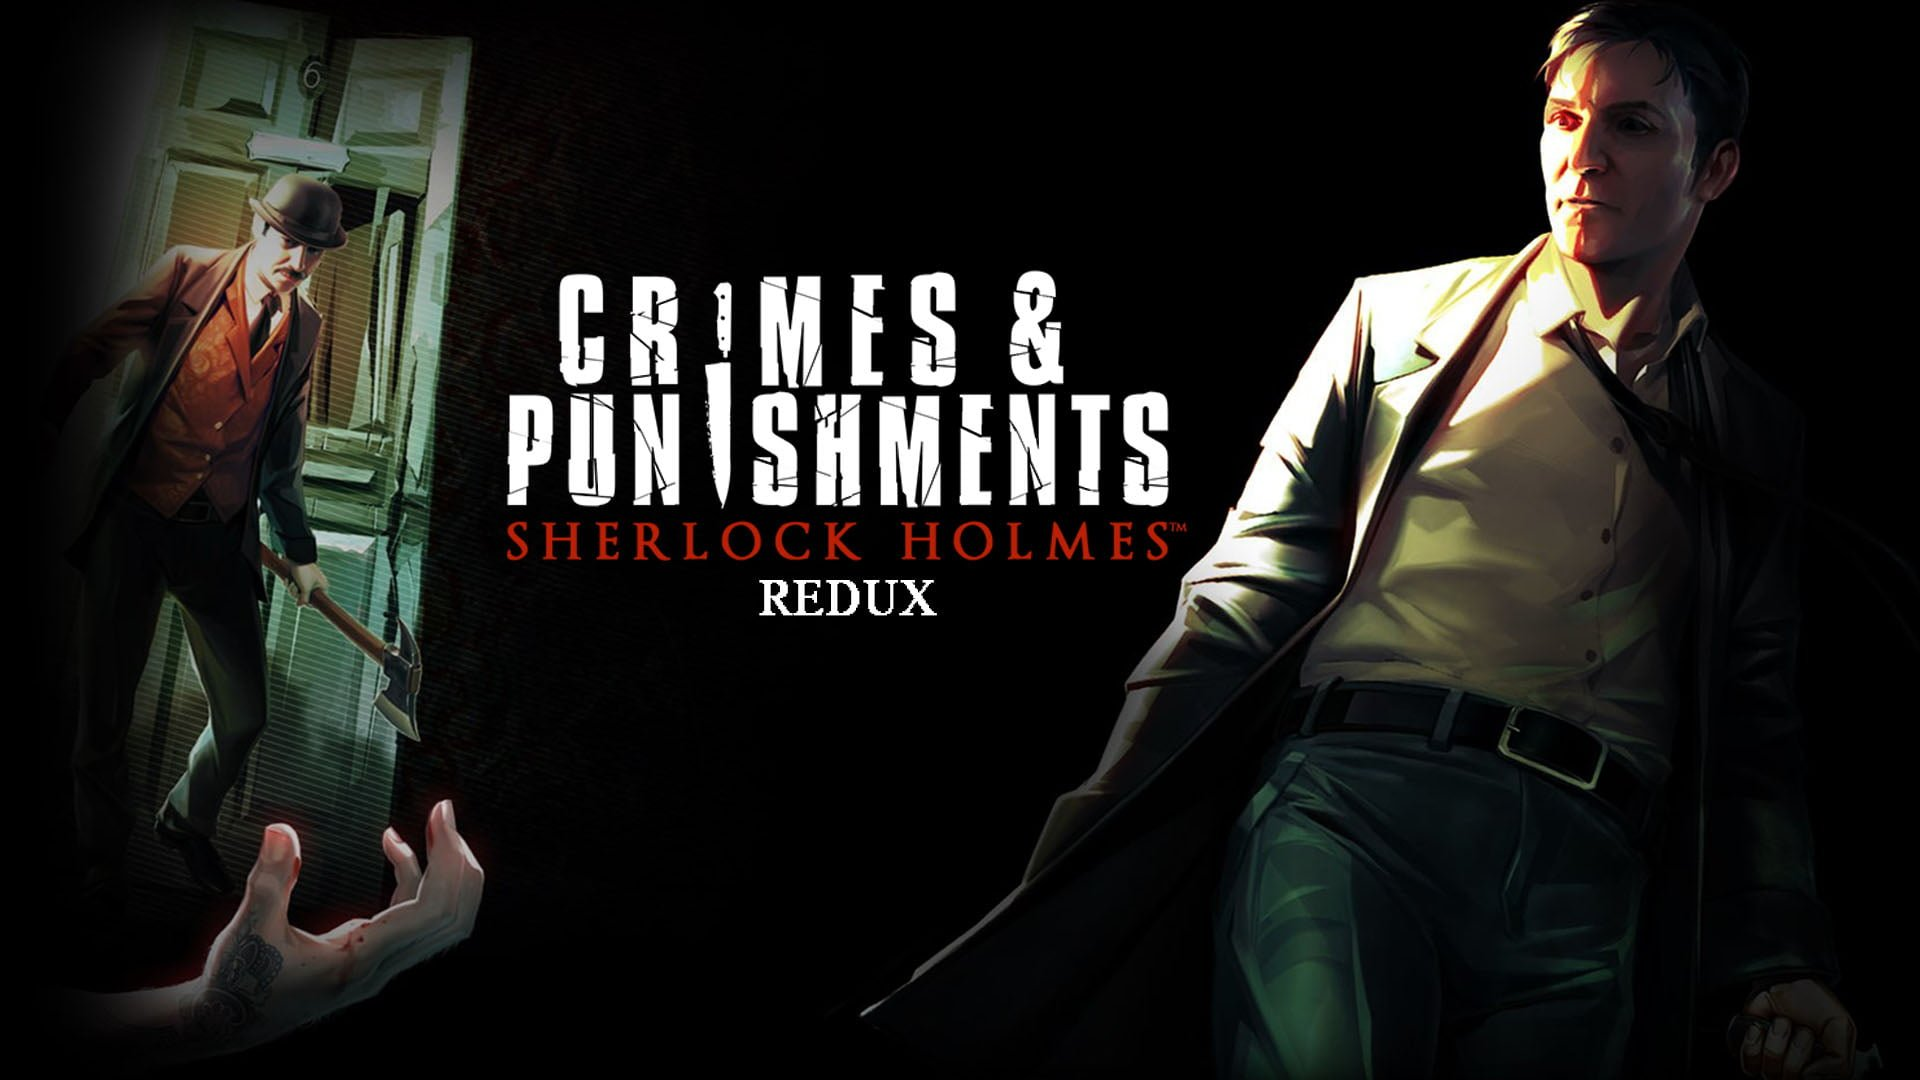 Sherlock Holmes: Crimes & Punishments REDUX (PS4) review